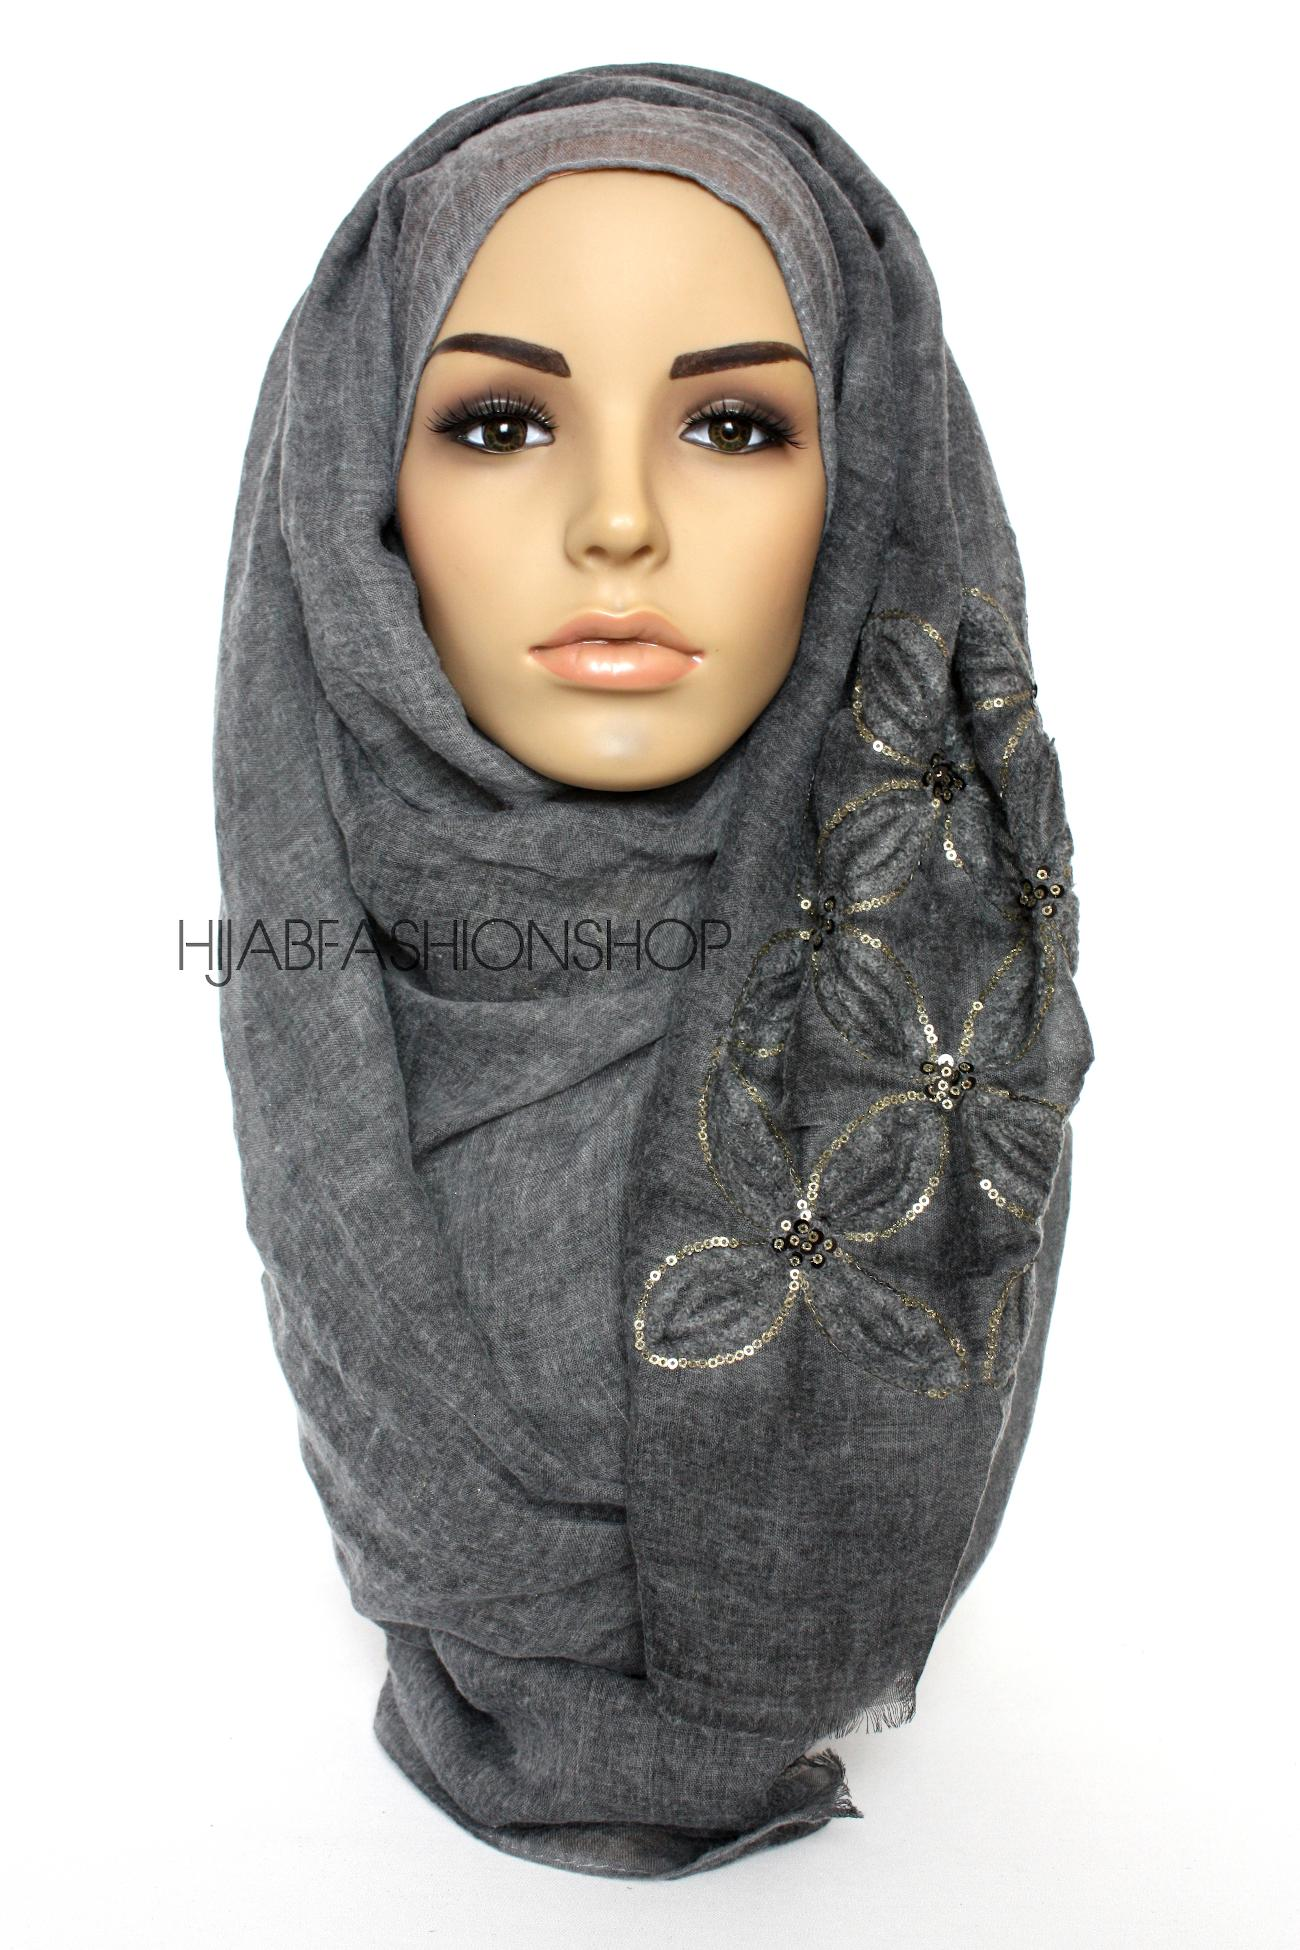 charcoal linen look hijab with lilies embroidery and sequins